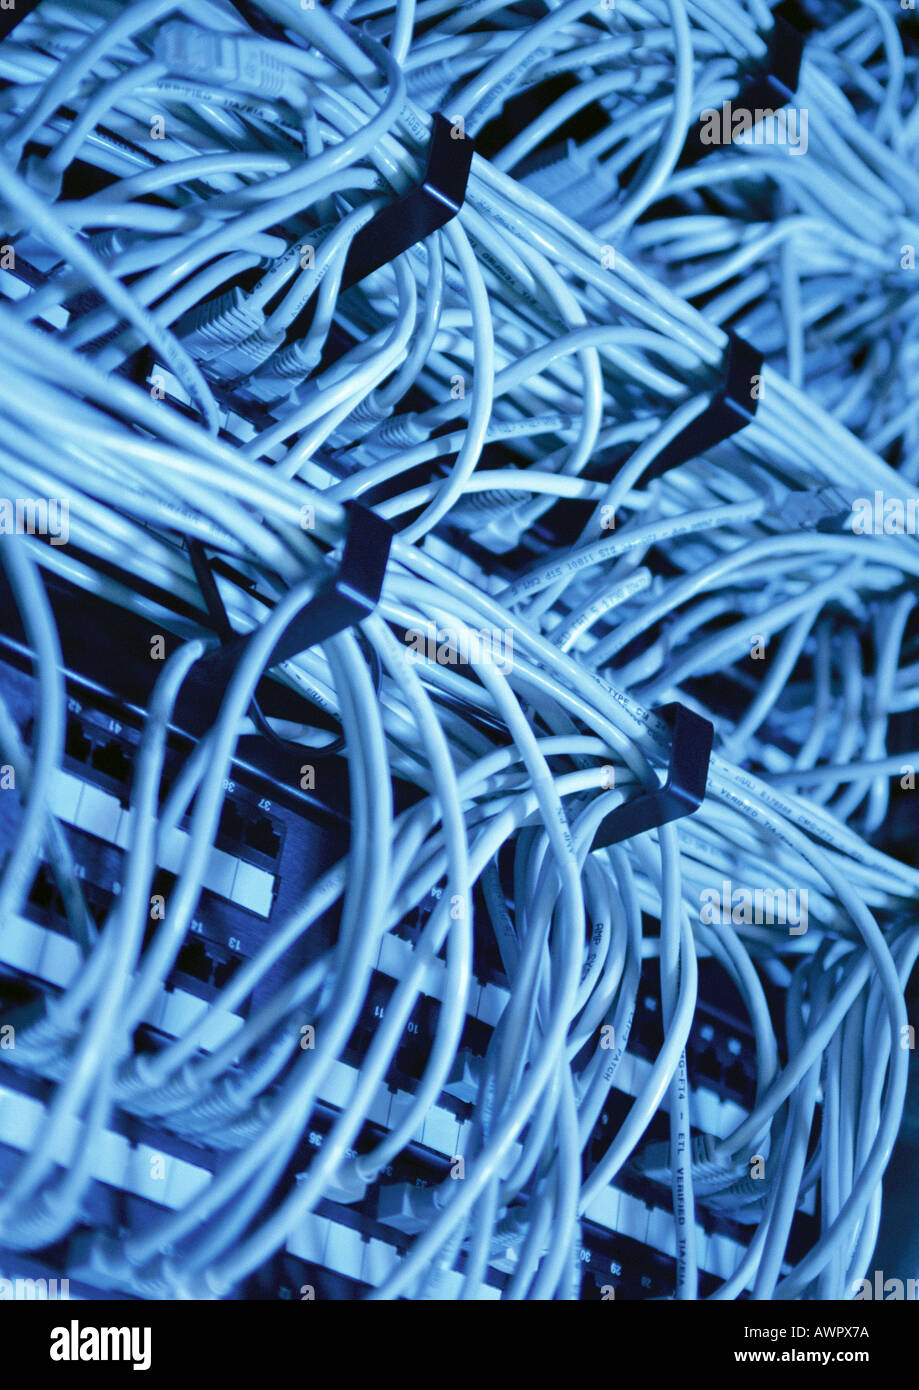 Computer wiring, close-up - Stock Image